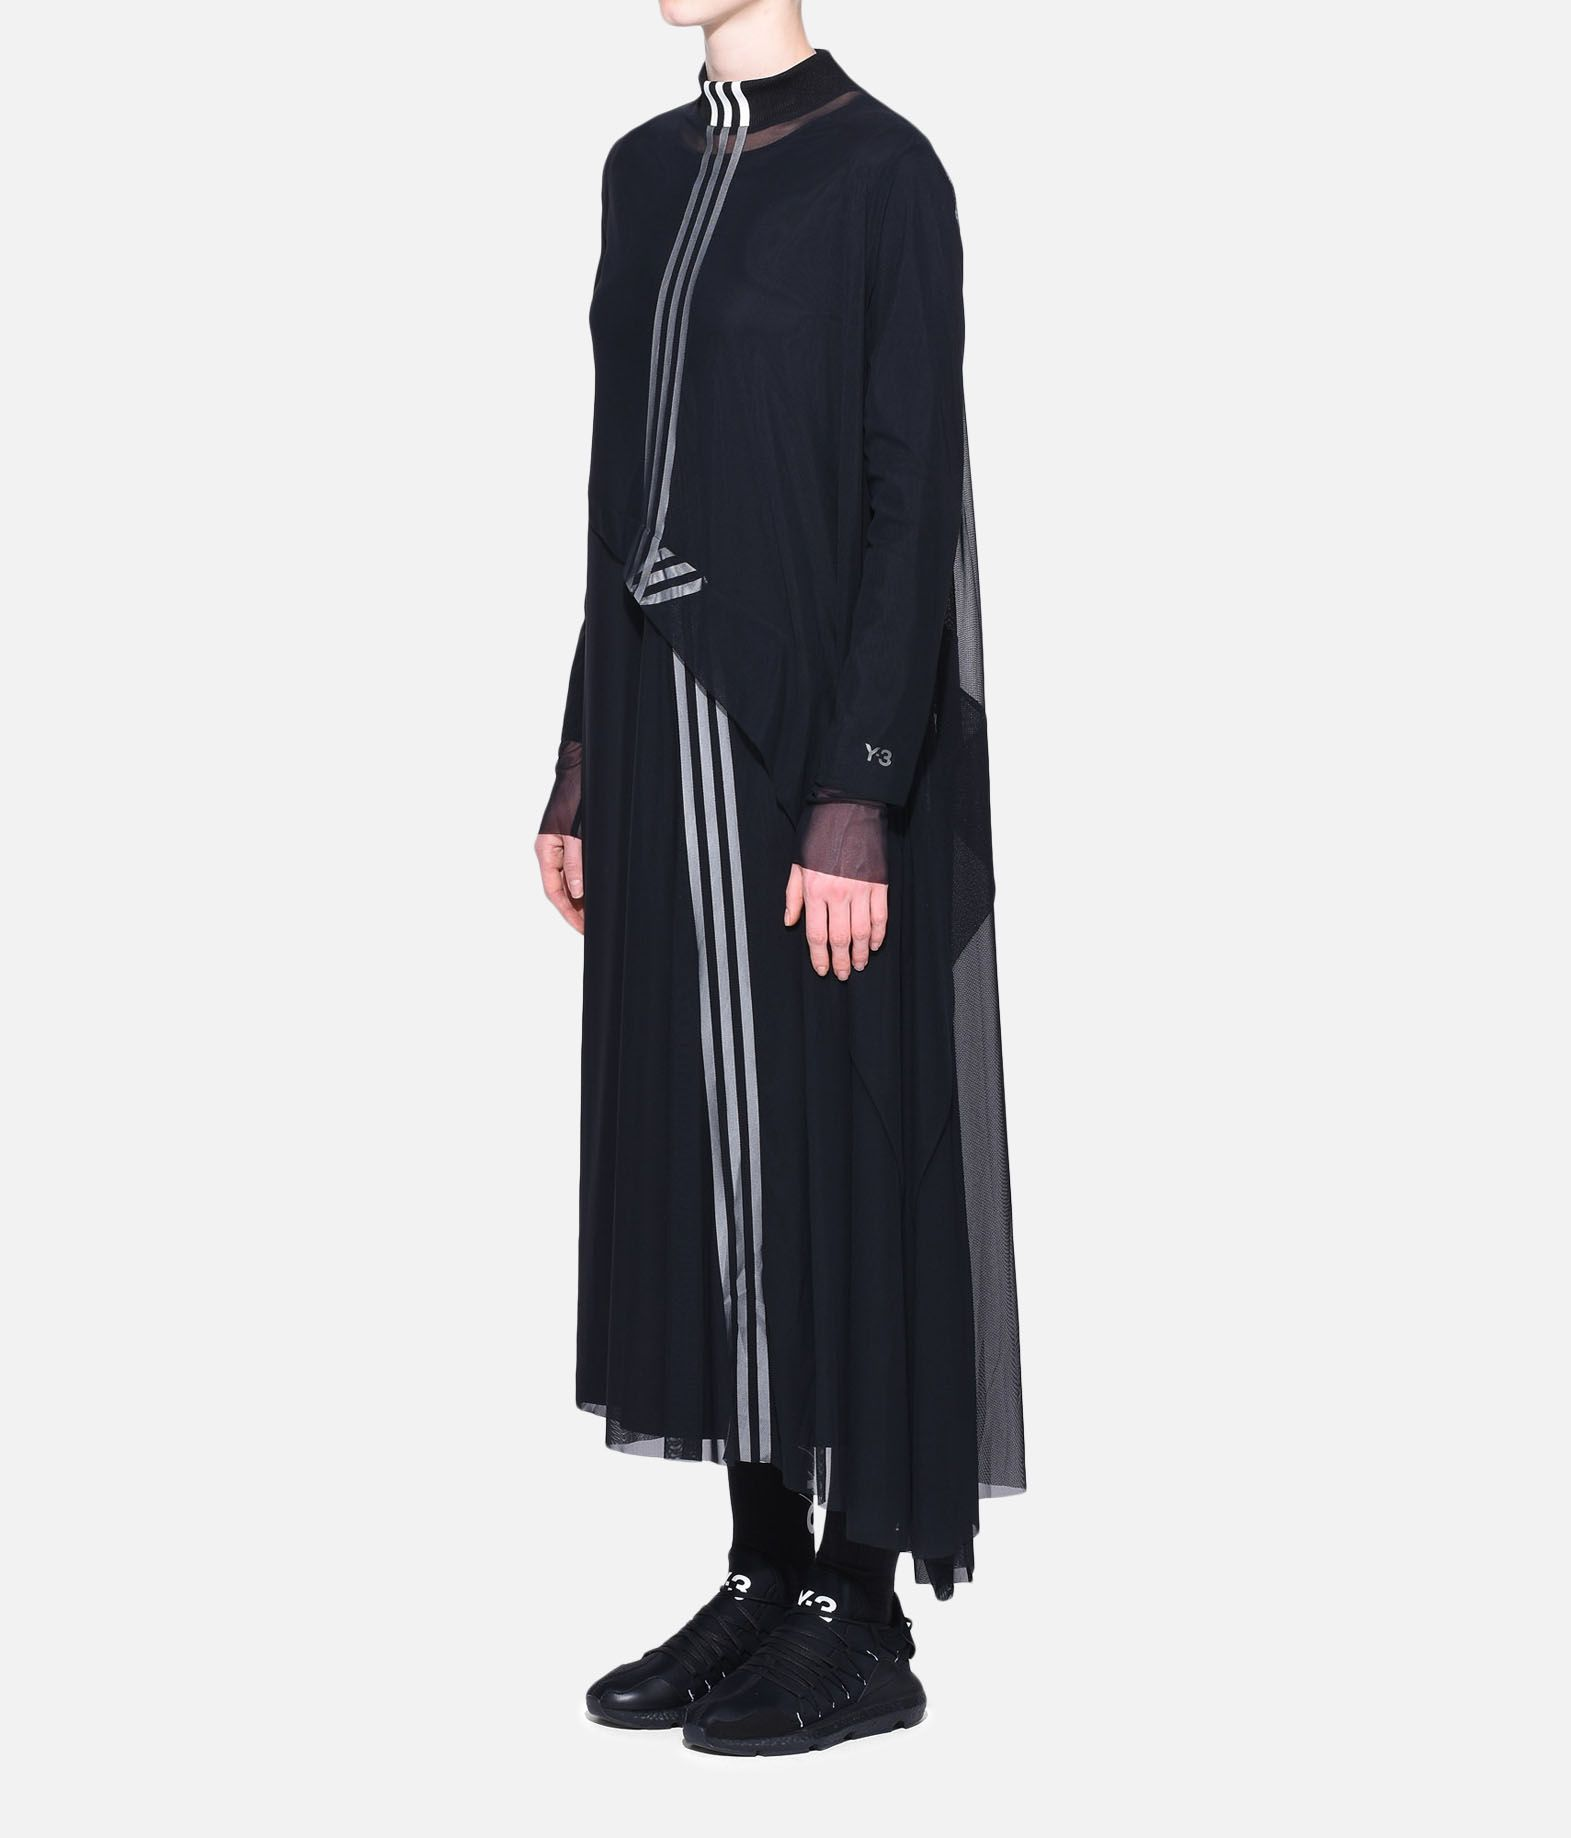 Y-3 Y-3 3-Stripes Mesh Dress Long dress Woman e